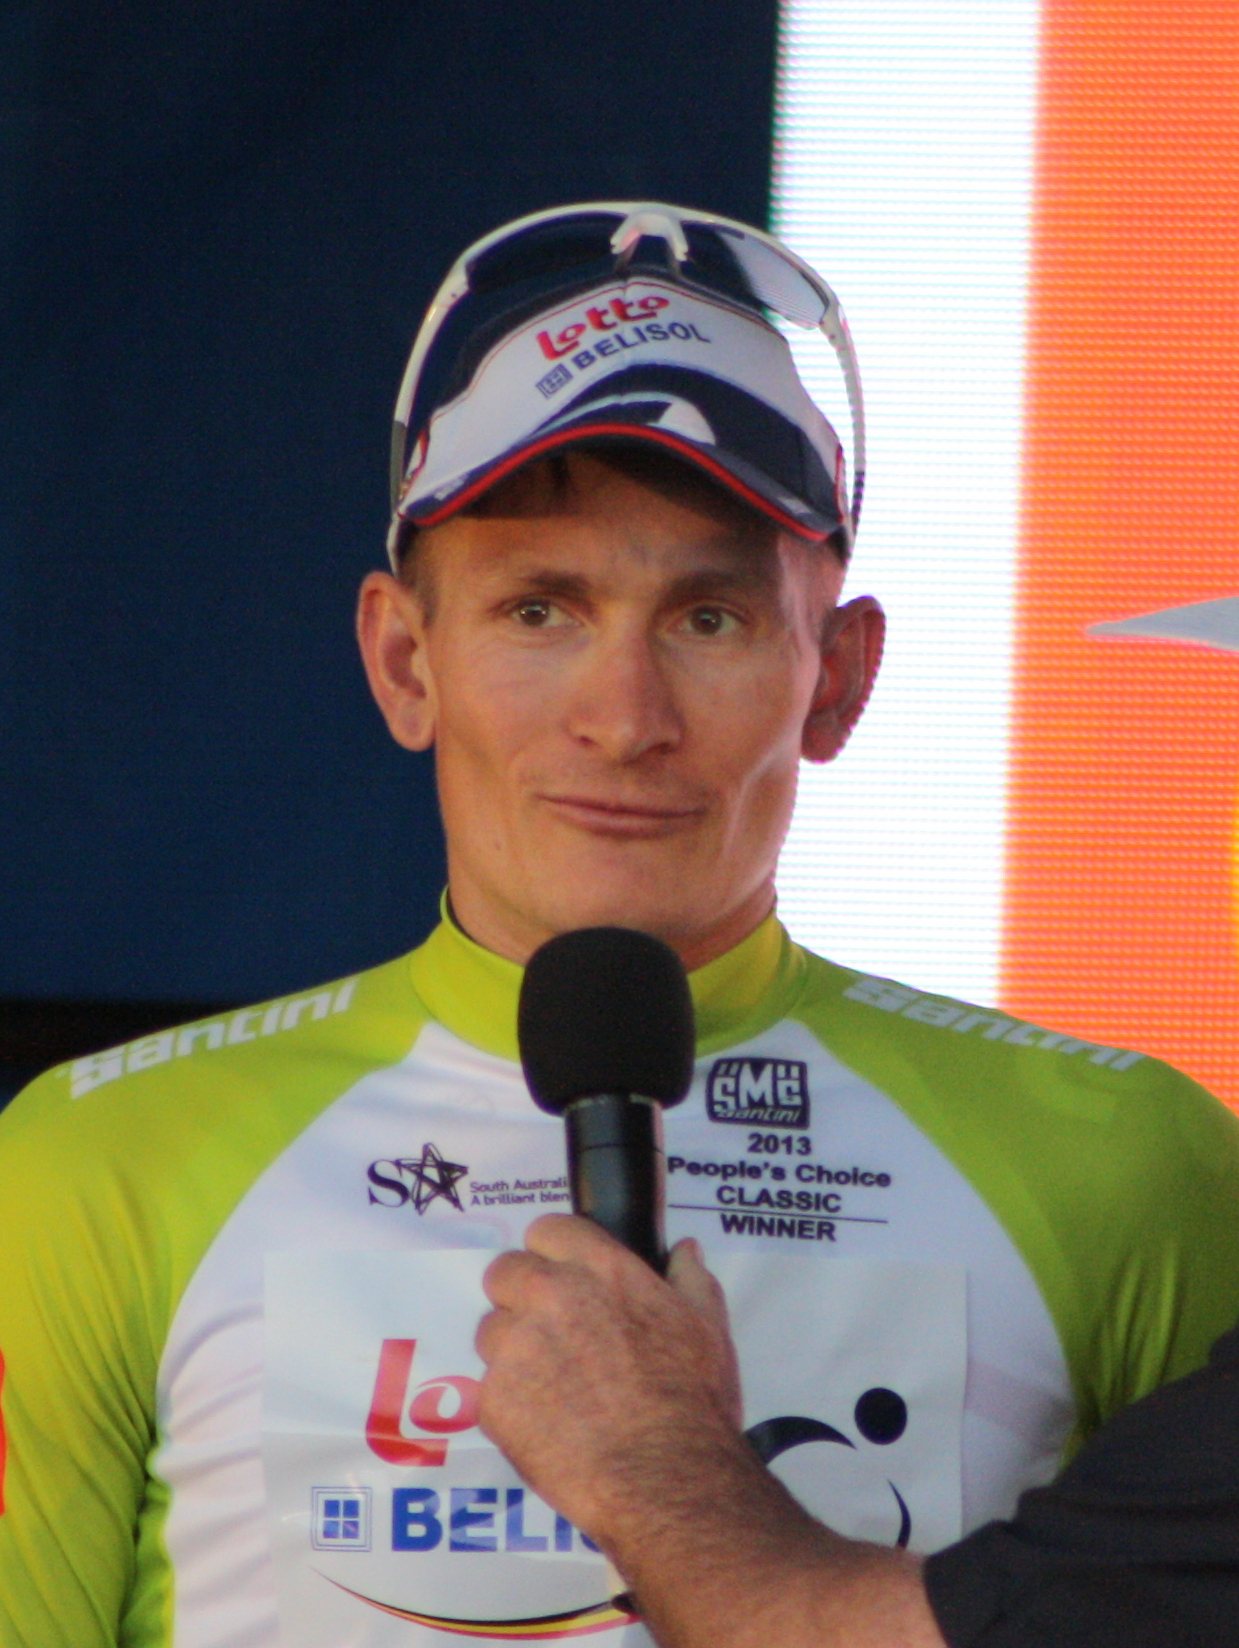 The 34-year old son of father (?) and mother(?), 184 cm tall André Greipel in 2017 photo